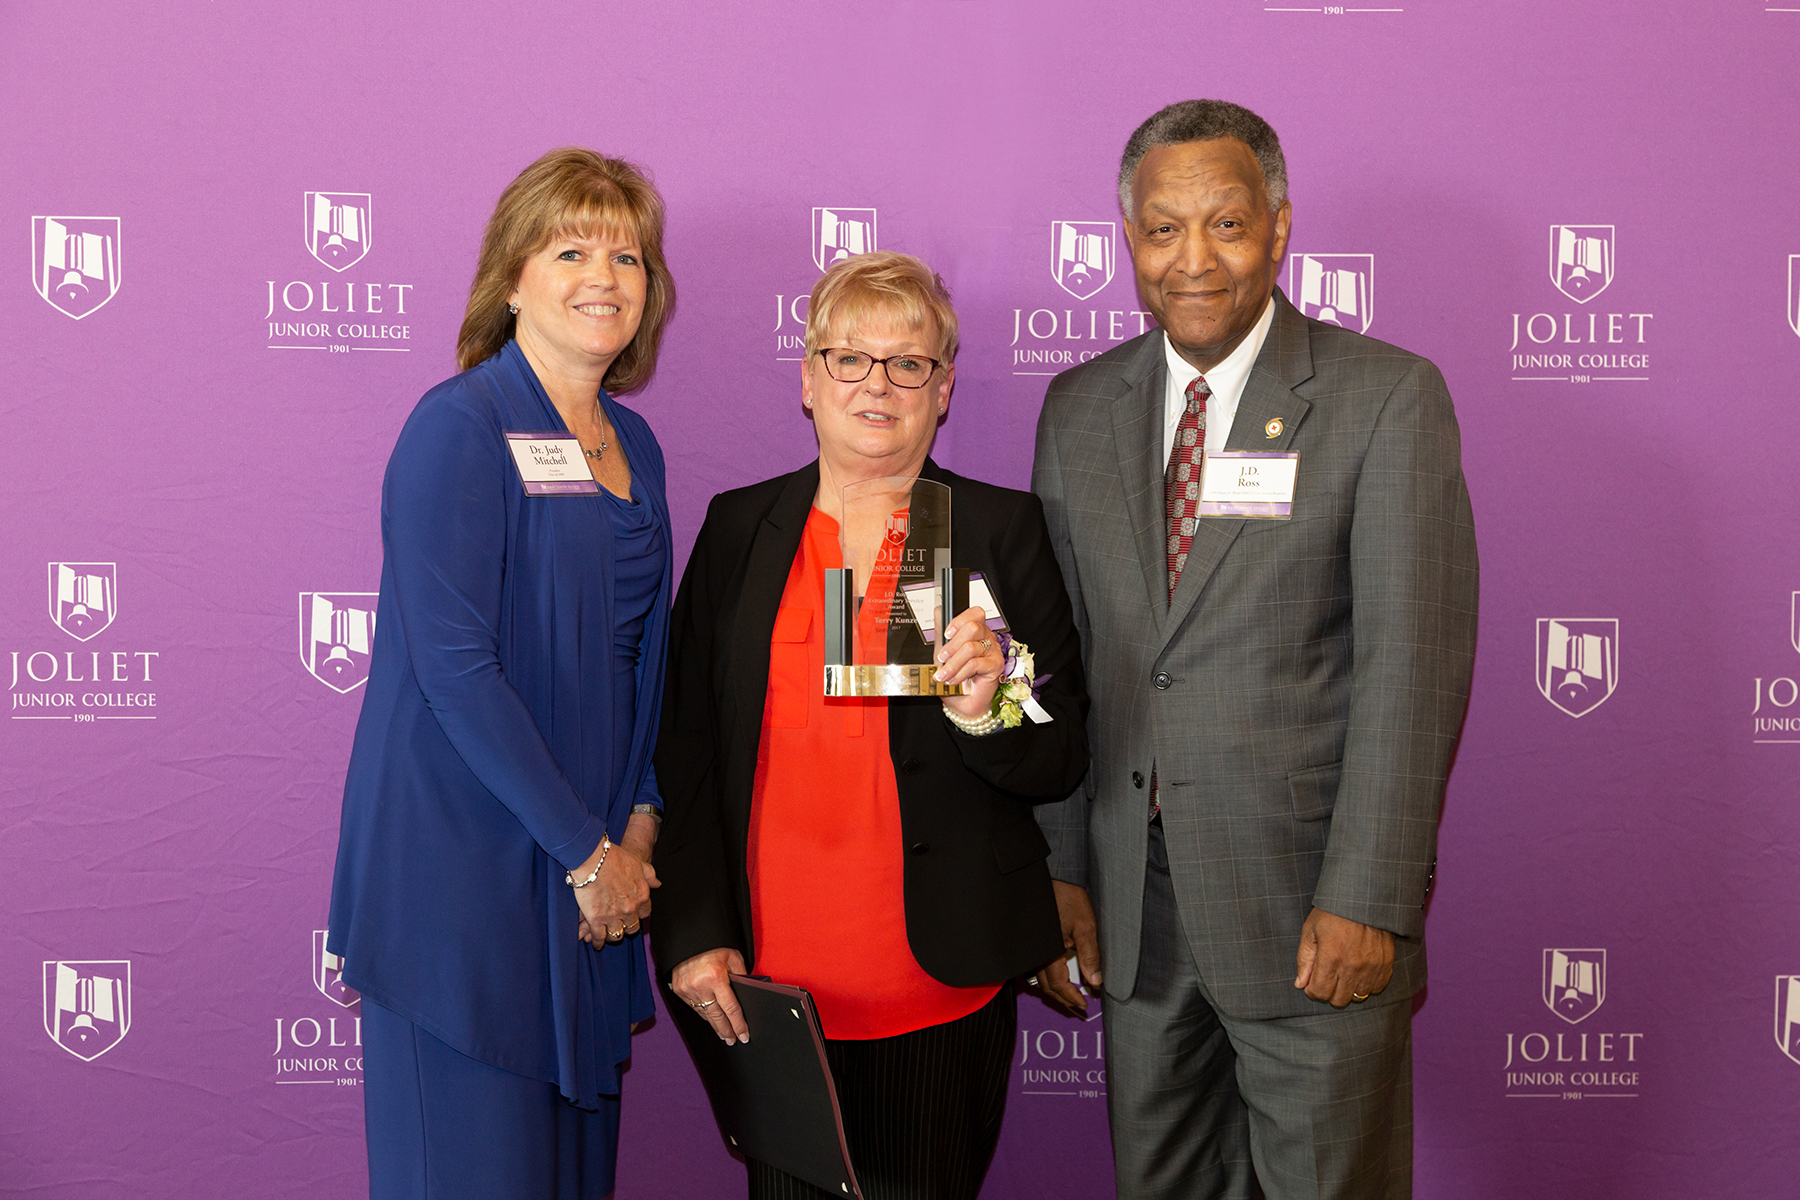 From left: JJC President Dr. Judy Mitchell, Terry Kunze (J.D. Ross Extraordinary Service Award recipient), and JJC President Emeritus J.D. Ross